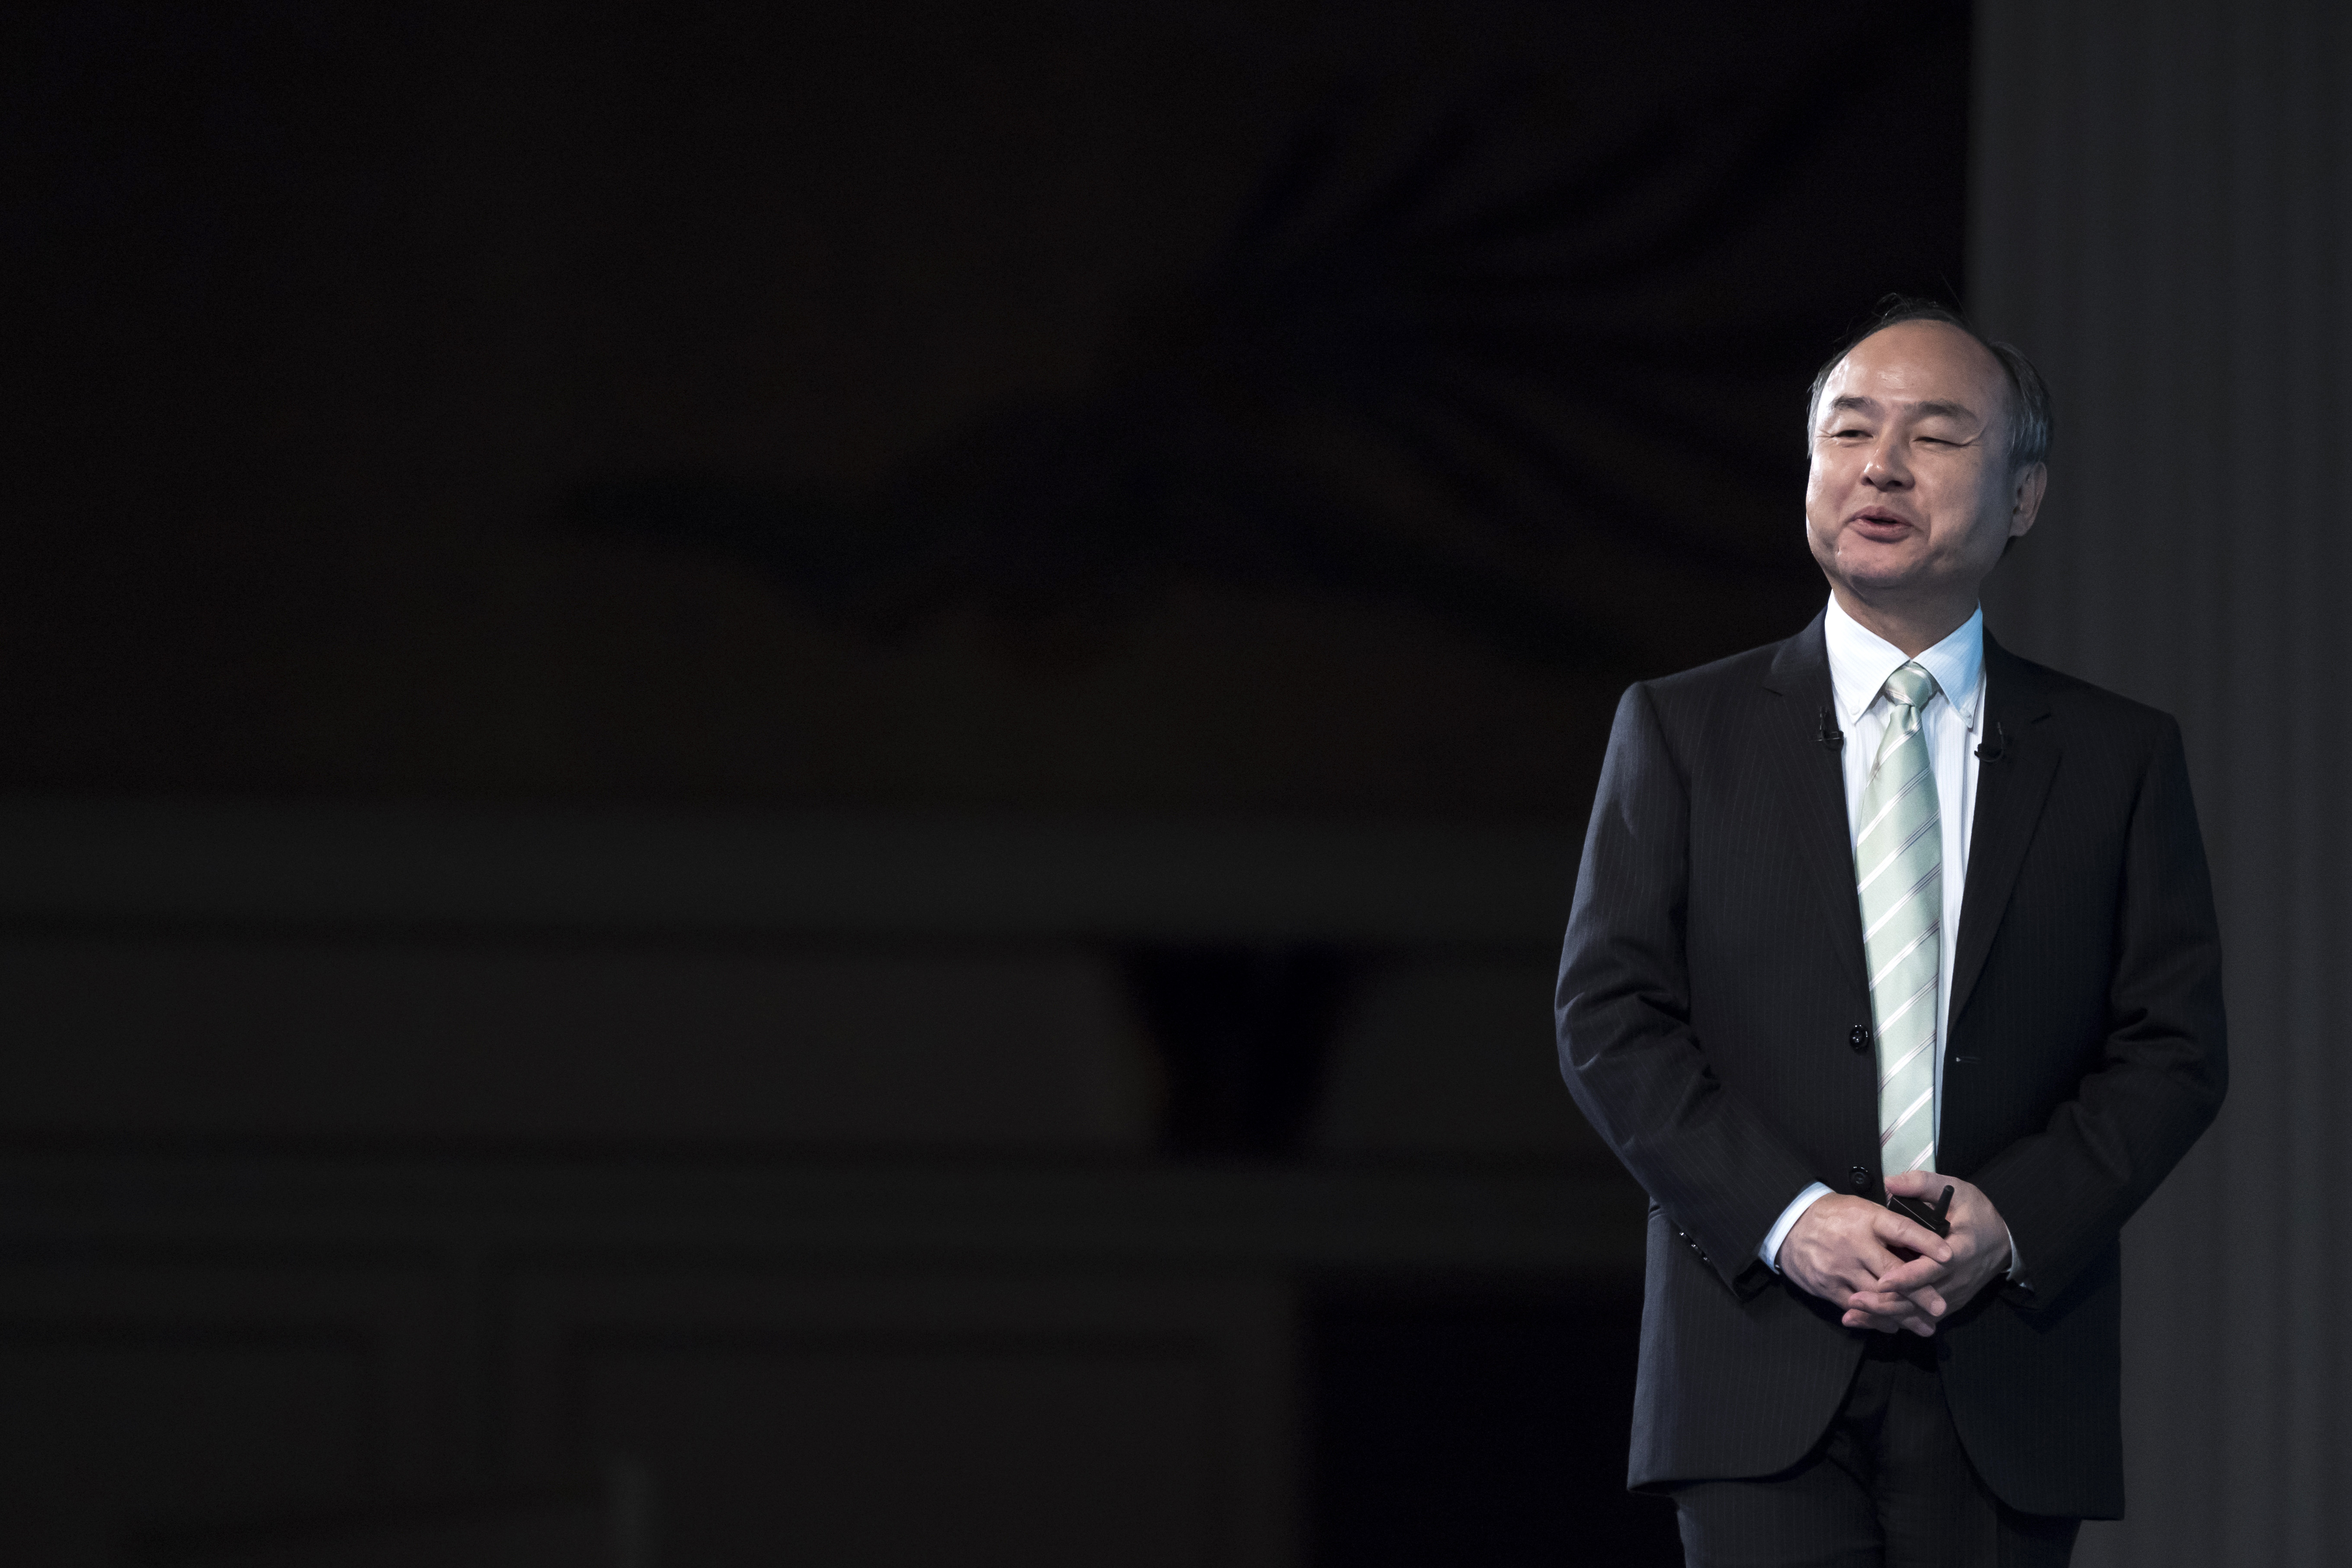 TOKYO, JAPAN - FEBRUARY 12: SoftBank Group Corp. TOKYO, JAPAN - FEBRUARY 12: SoftBank Group Corp. Chairman and Chief Executive Officer Masayoshi Son speaks during a press conference on February 12, 2020 in Tokyo, Japan. SoftBank reported its third-quarter earnings results today following the approval of a merger between T-Mobile US Inc. and SoftBank's U.S. telecom unit Sprint Corp. from a federal judge. (Photo by Tomohiro Ohsumi/Getty Images)